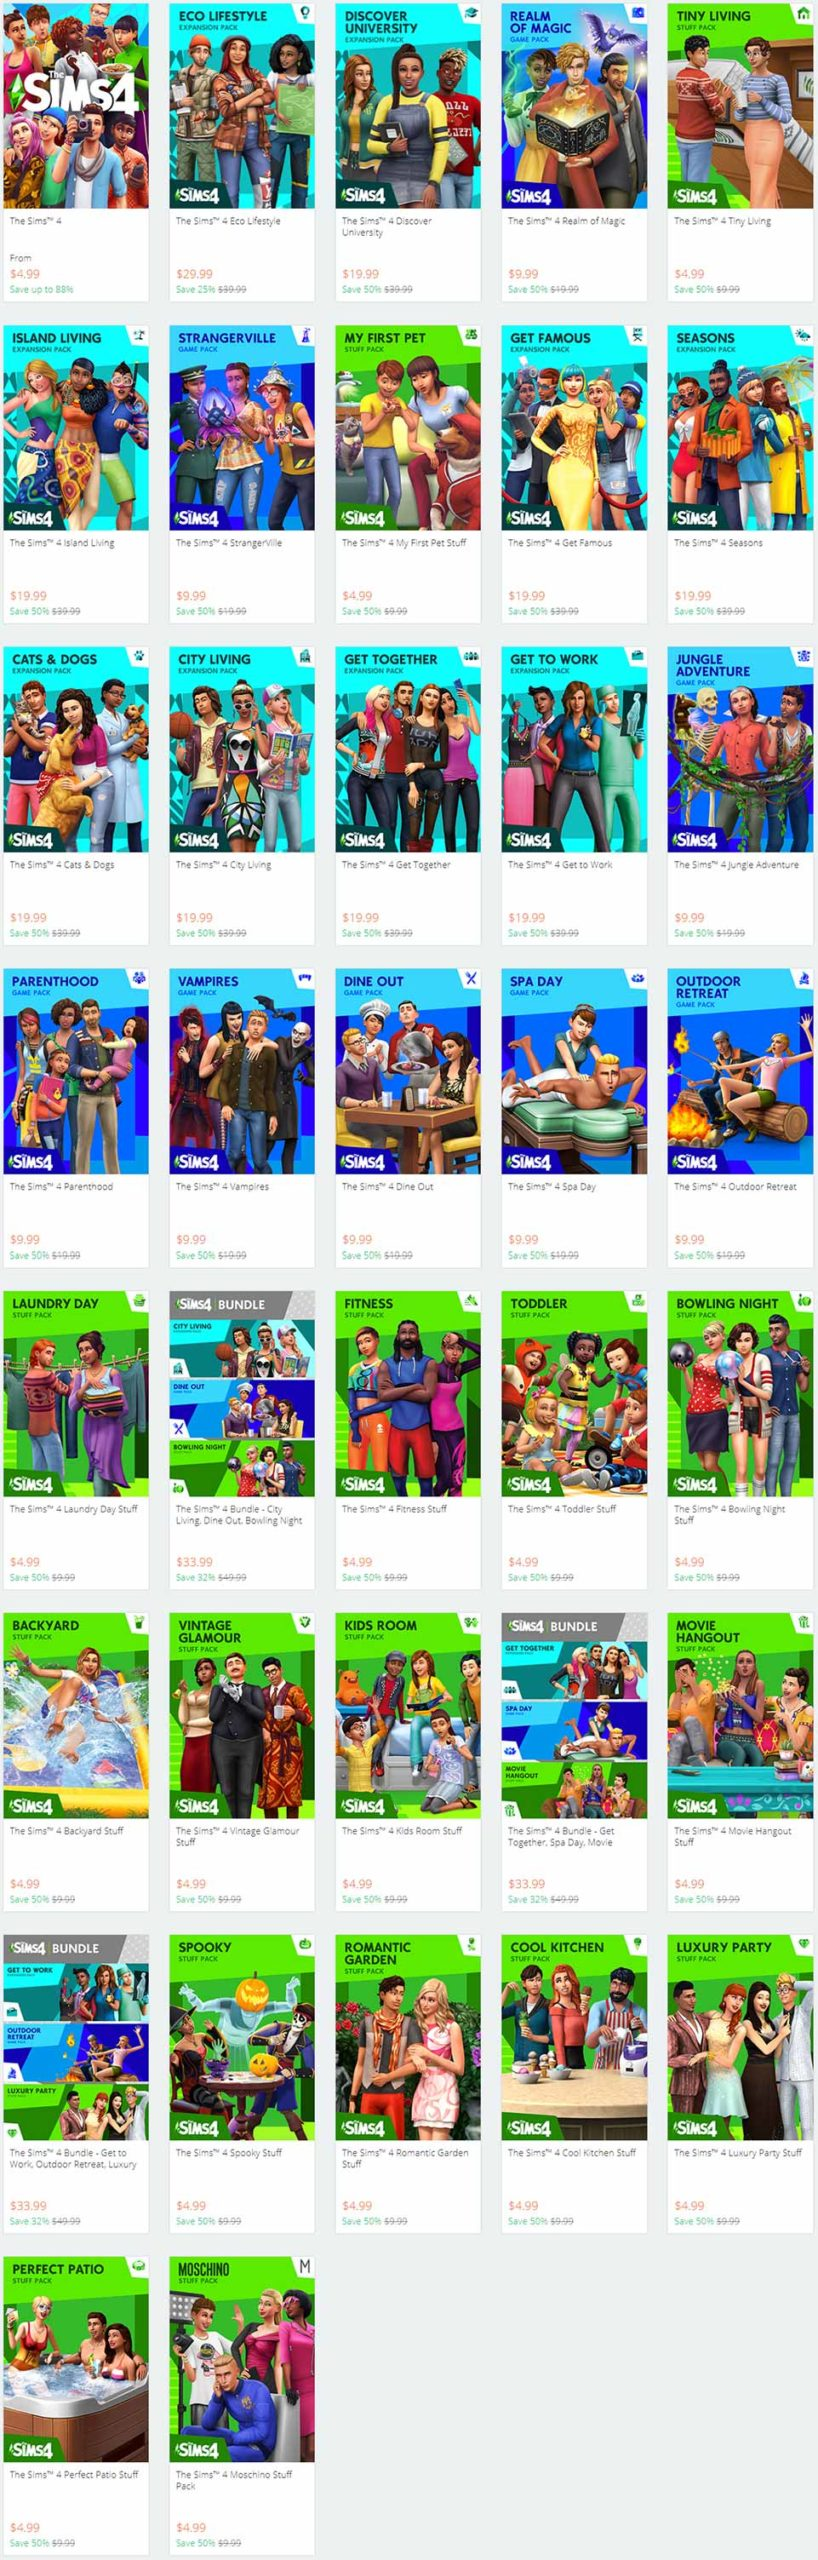 The Sims 4 Sale July 2020 - Price List